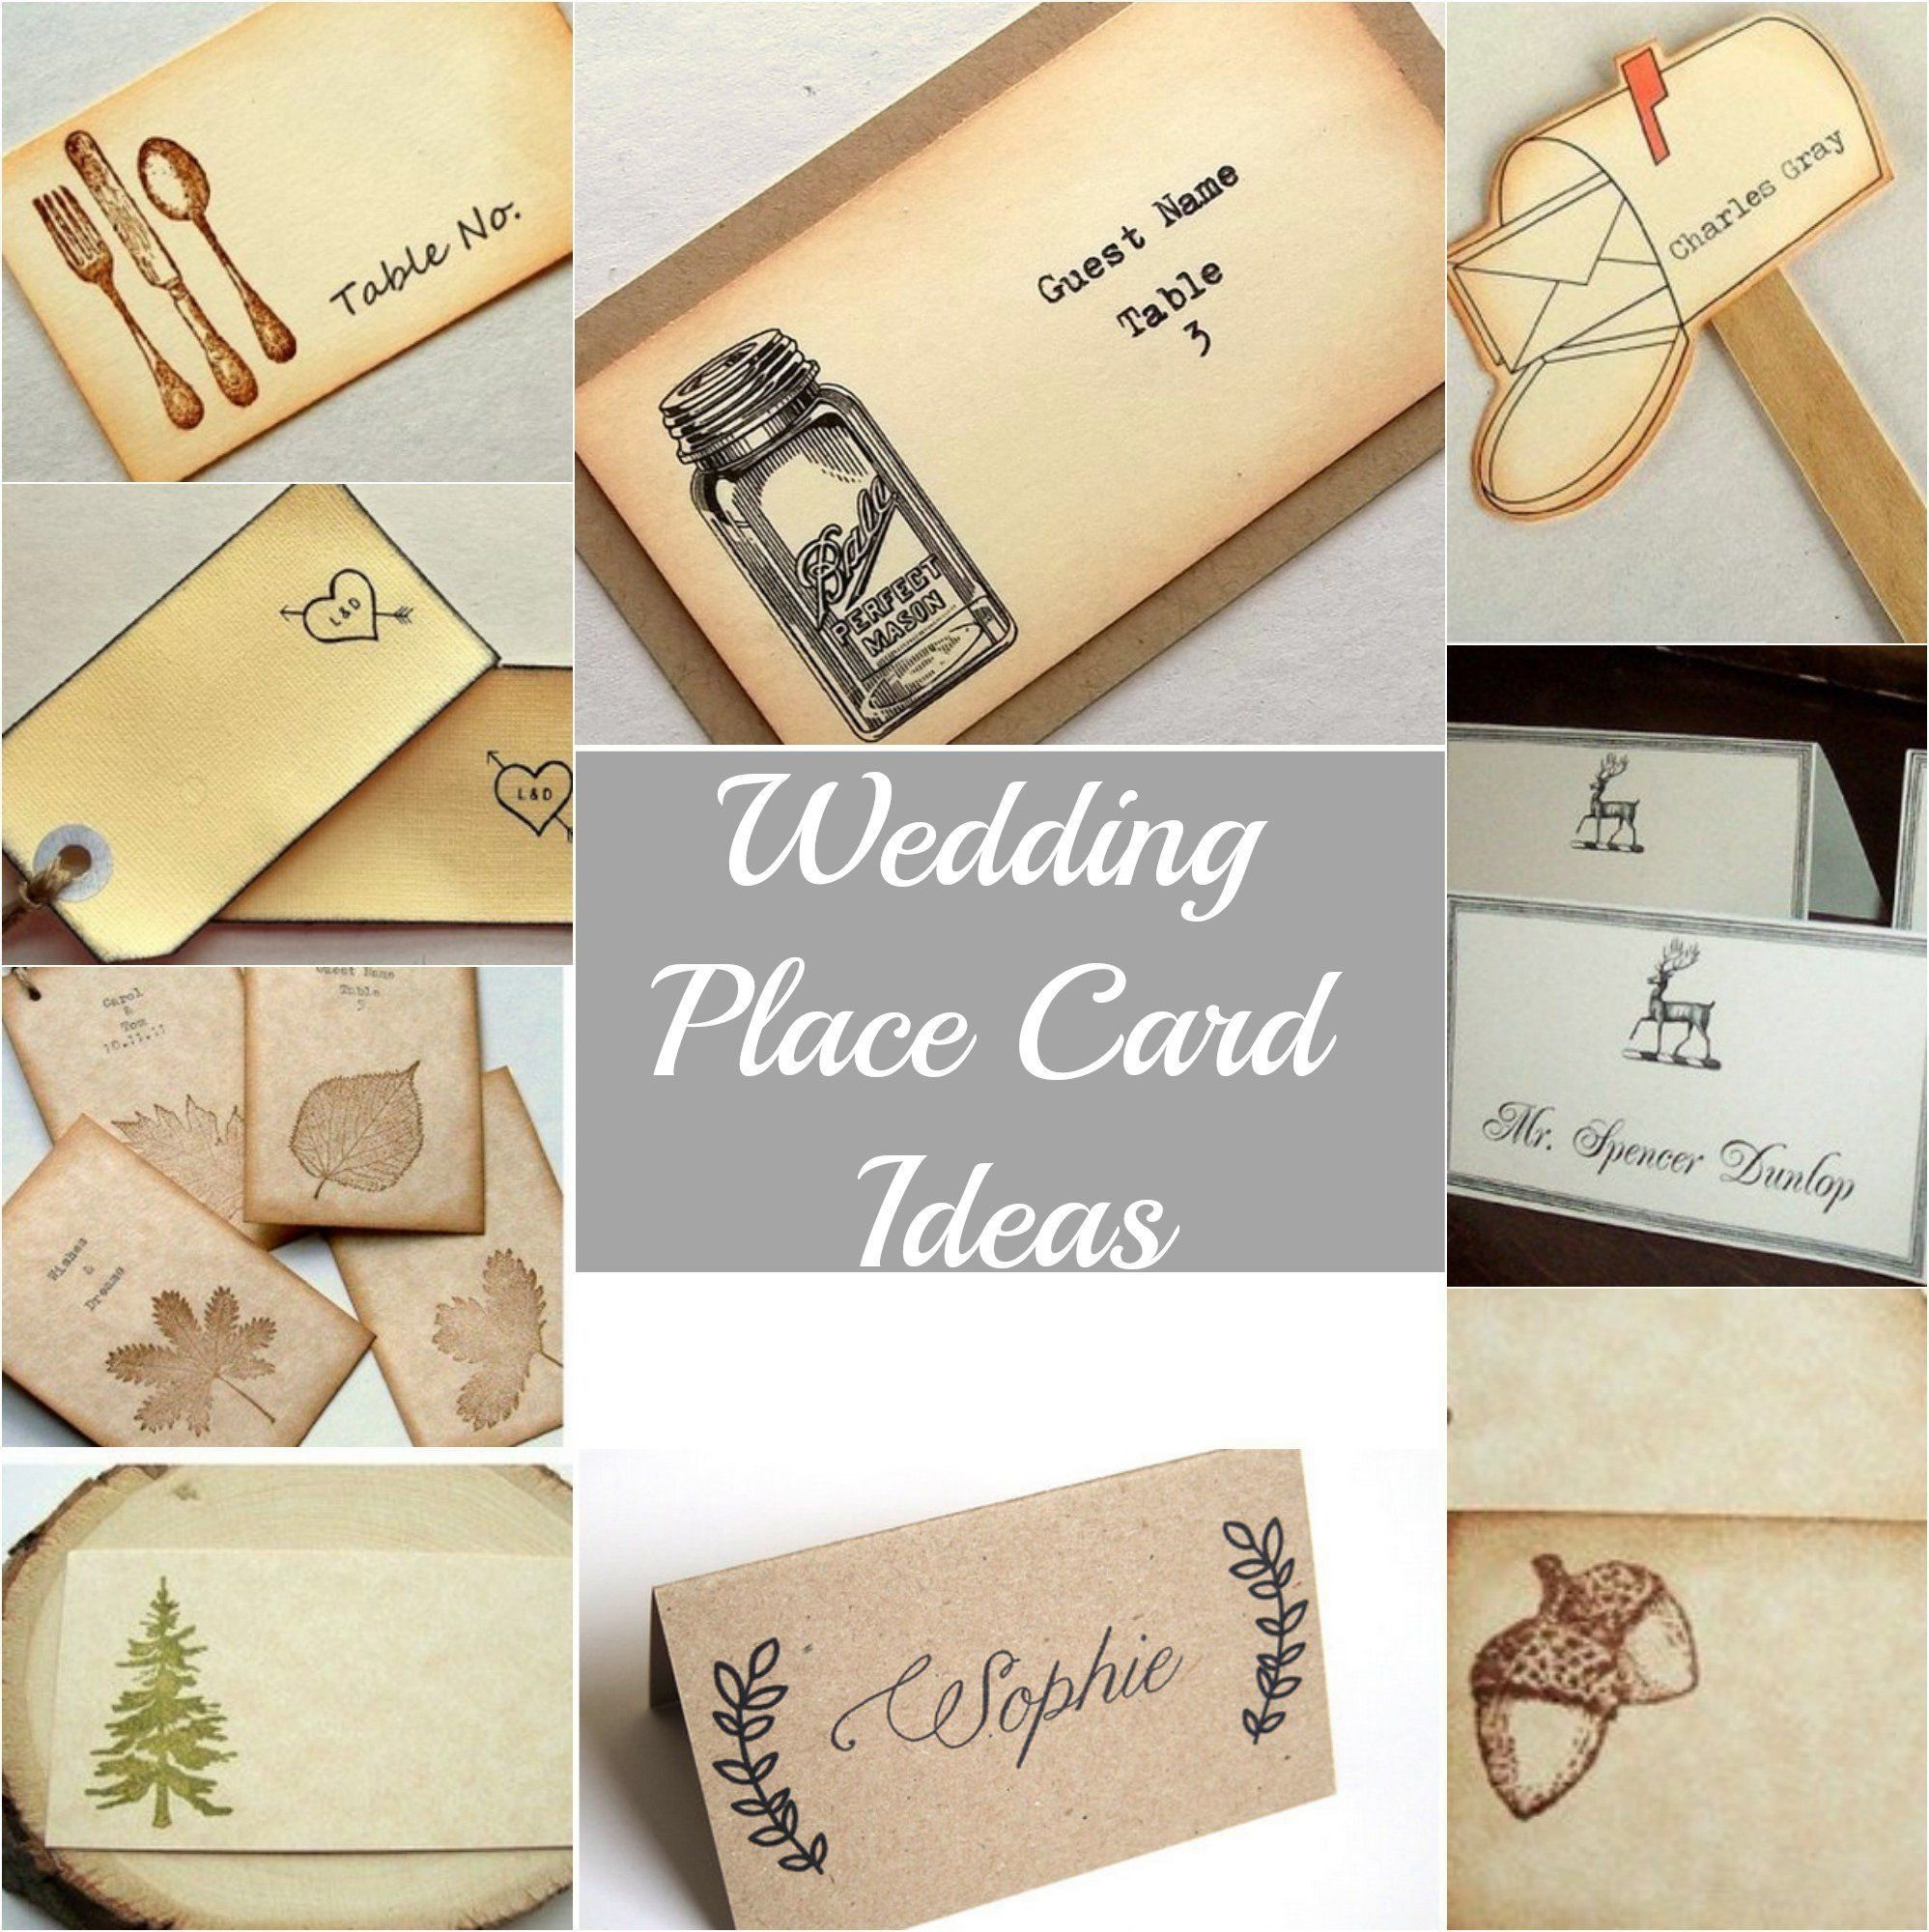 10 Attractive Place Card Ideas For Wedding rustic wedding place cards rustic wedding chic 2021